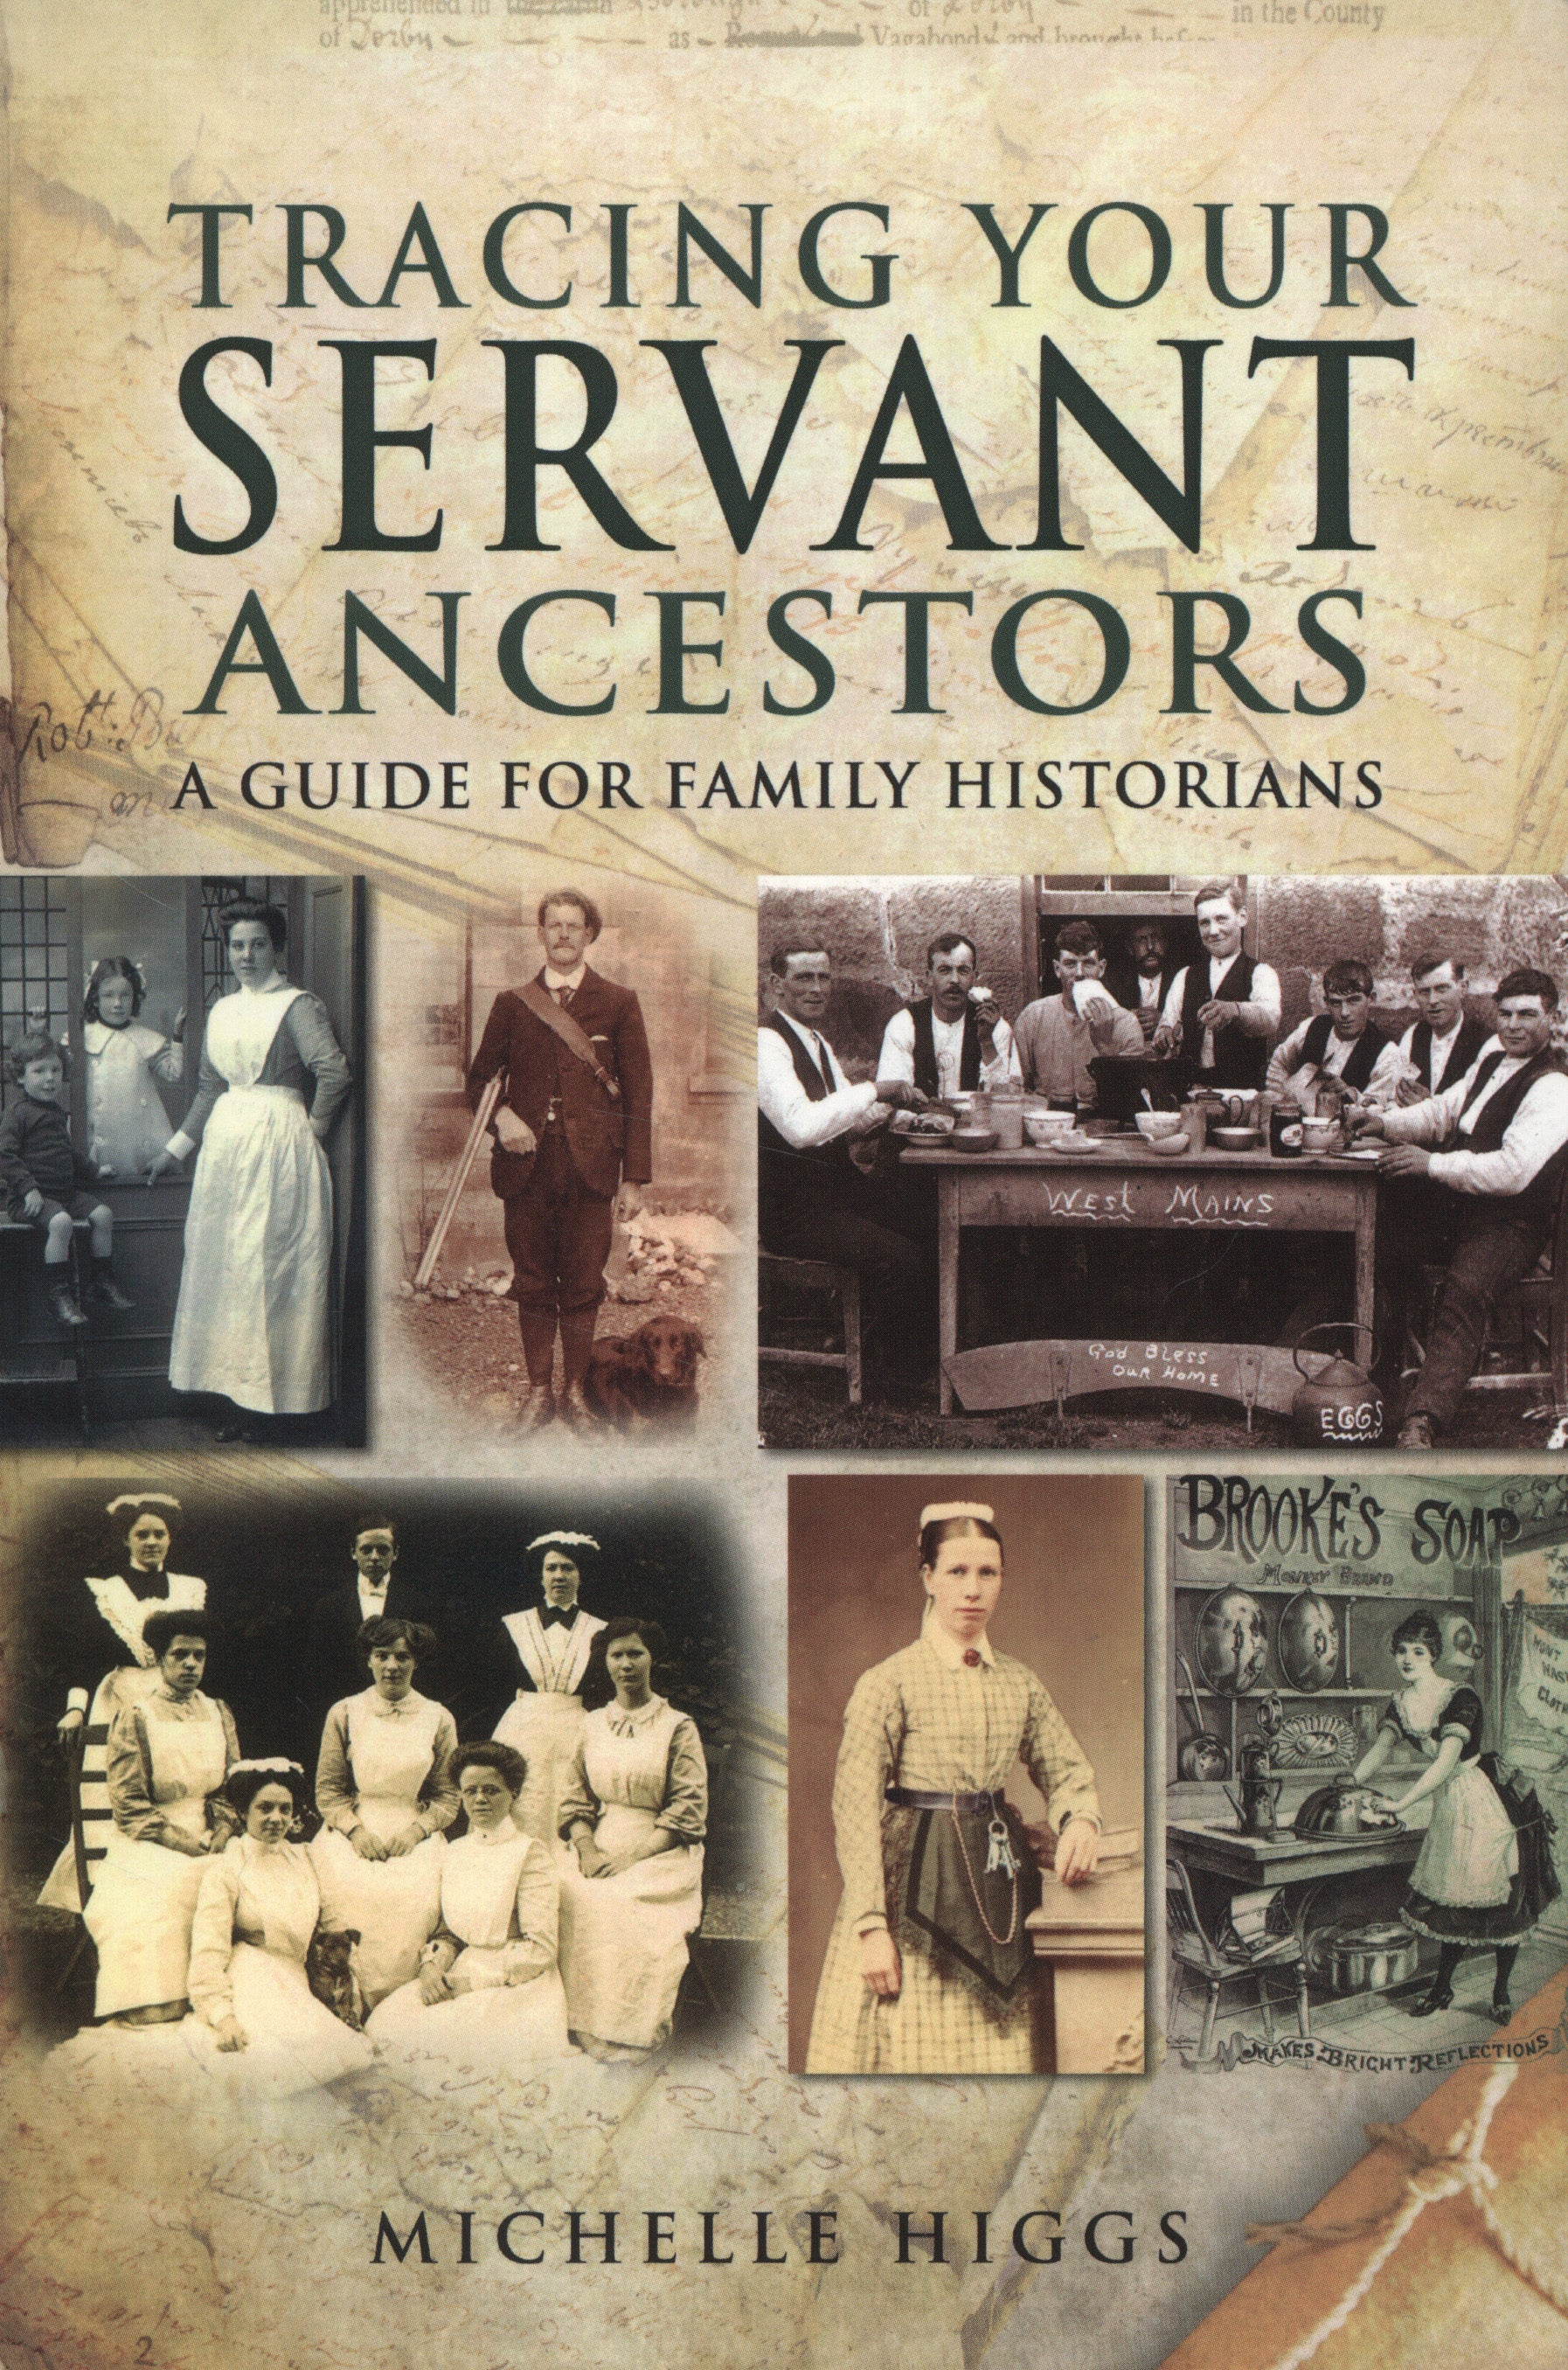 Tracing Your Servant Ancestors: A Guide for Family Historians